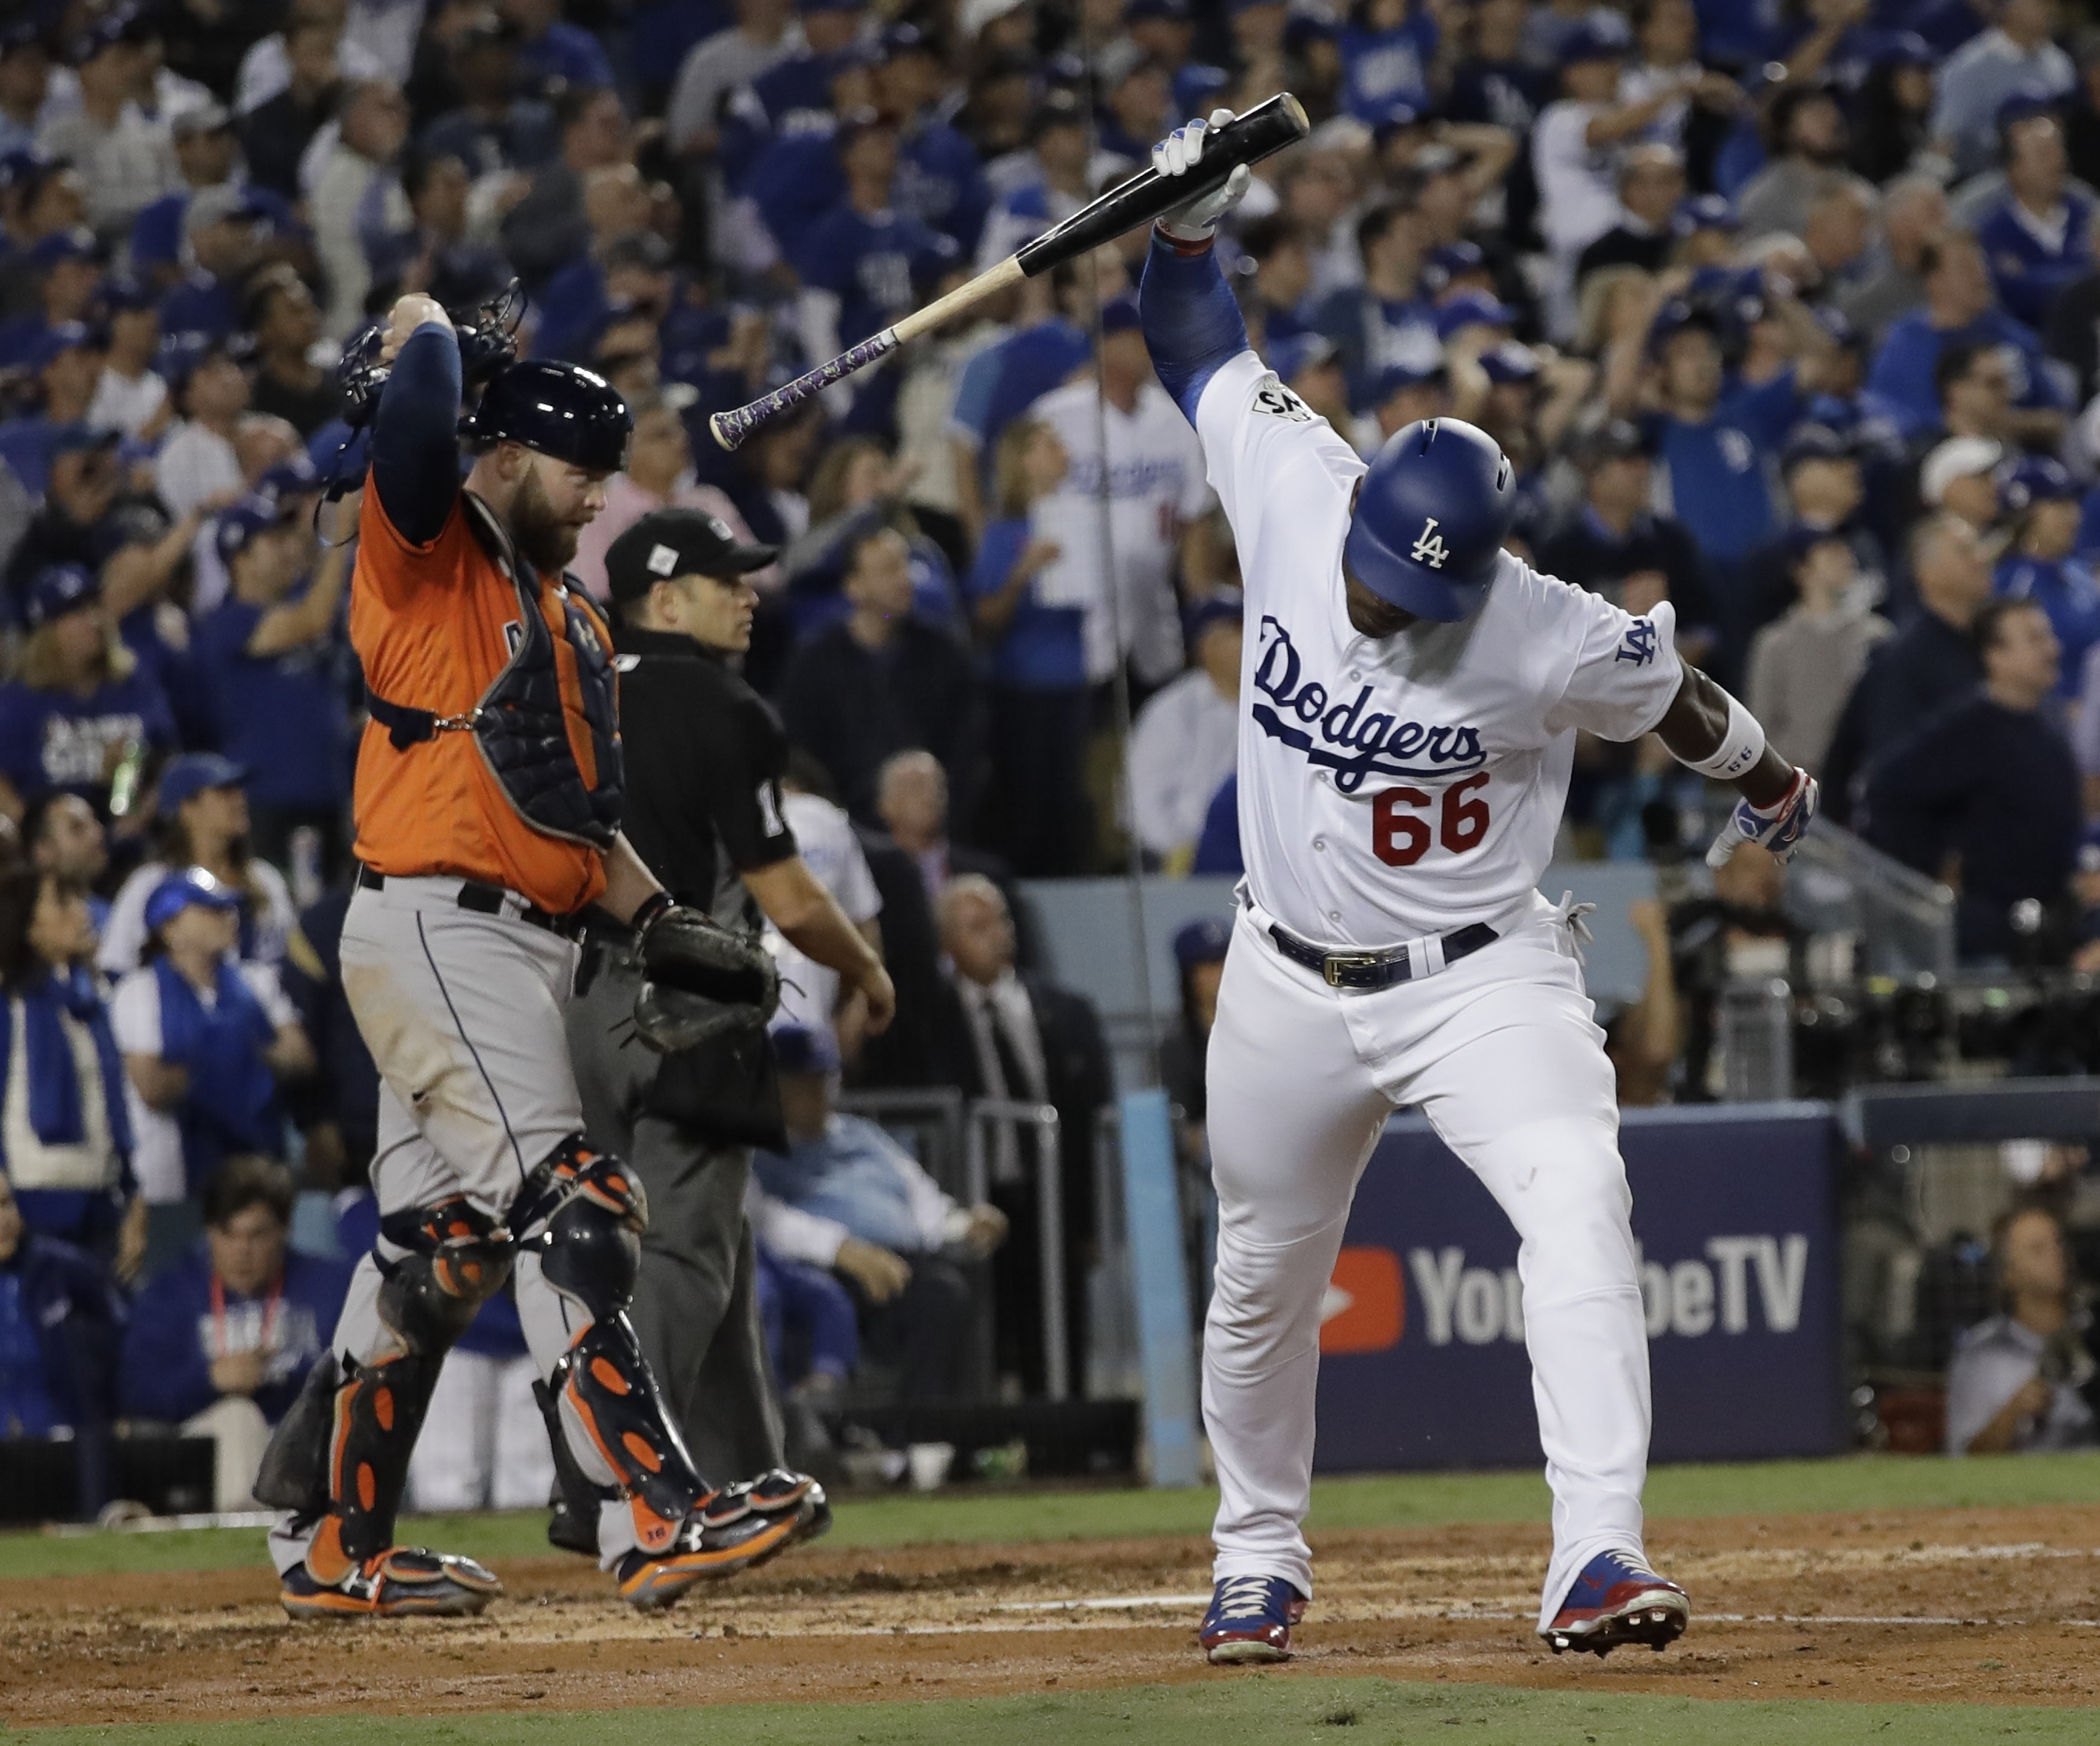 Los Angeles Dodgers' Yasiel Puig reacts after flying out during the third inning of Game 7 of baseball's World Series against the Houston Astros Wednesday, Nov. 1, 2017, in Los Angeles. (AP Photo/David J. Phillip)